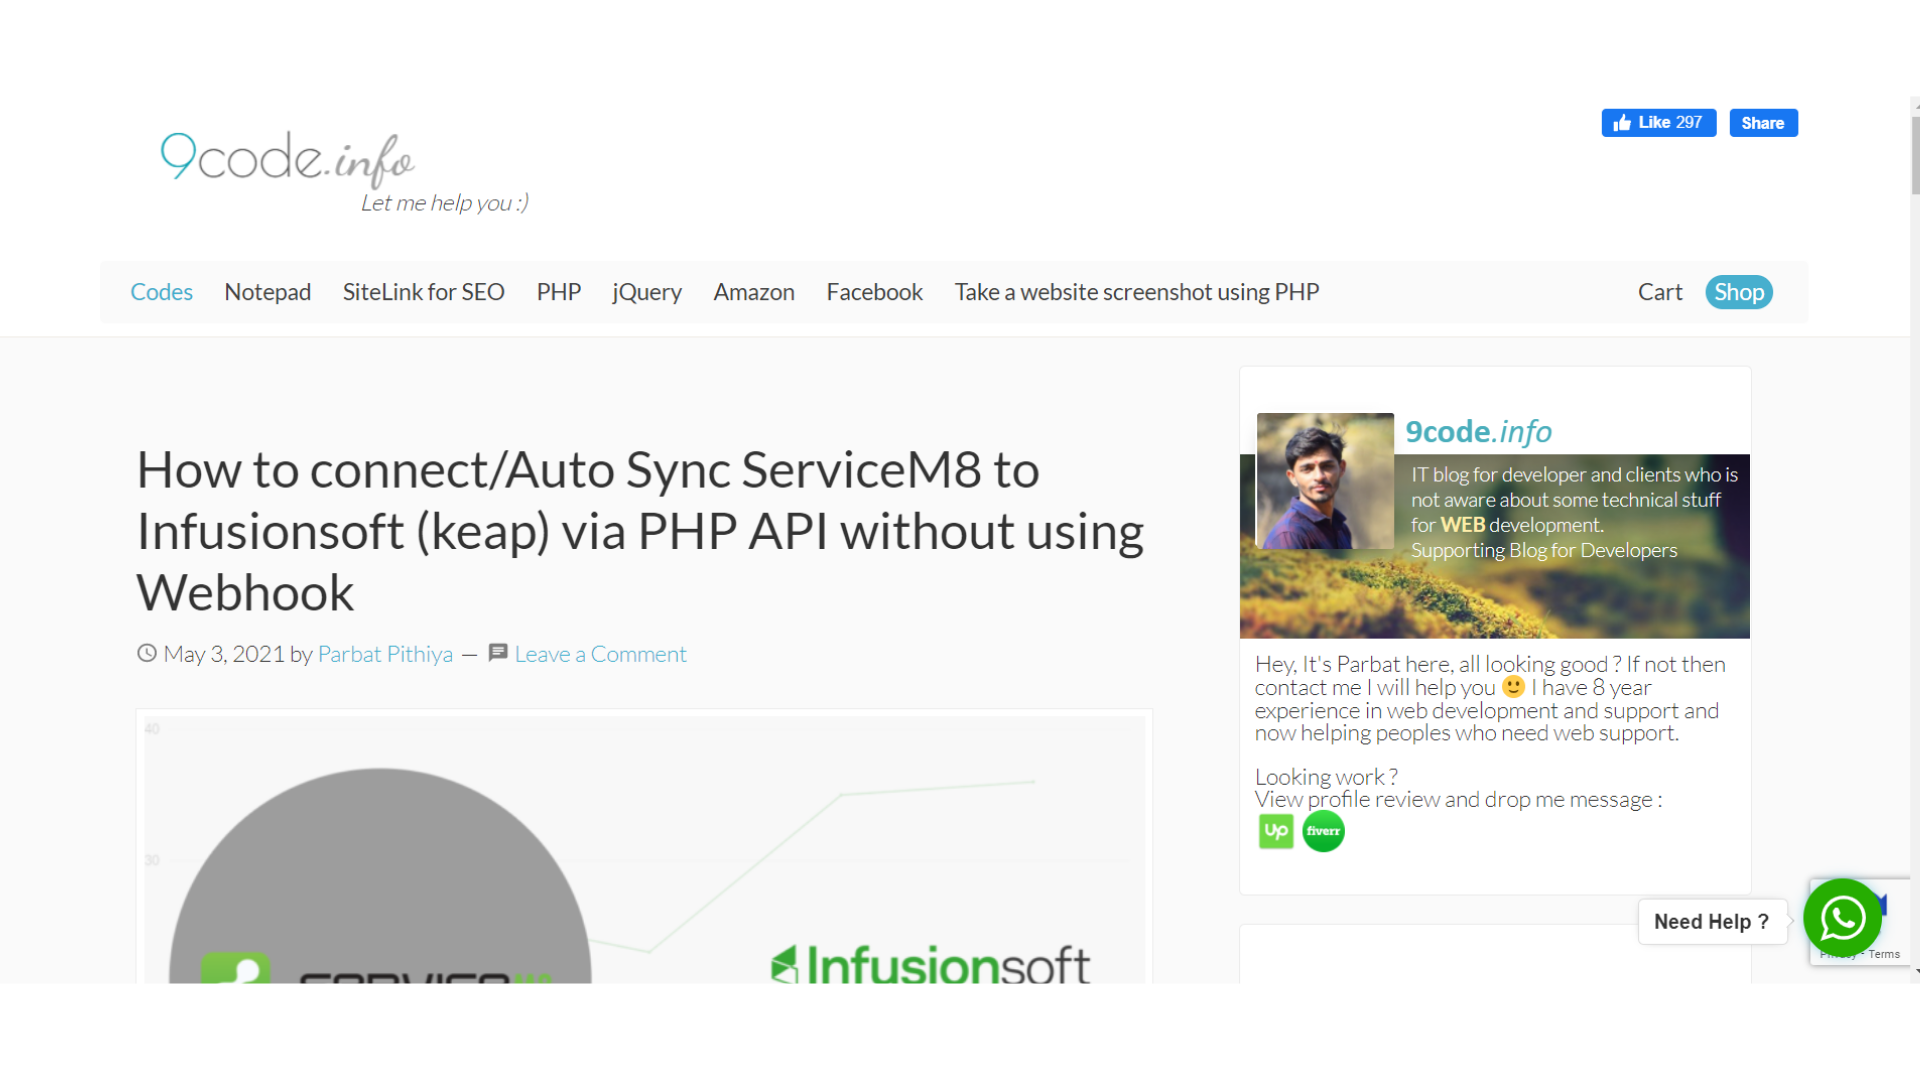 9code.info is a Programming Blog, Tutorials, jQuery, Ajax, PHP, MySQL With All Free Demo and Download - Gatetouch